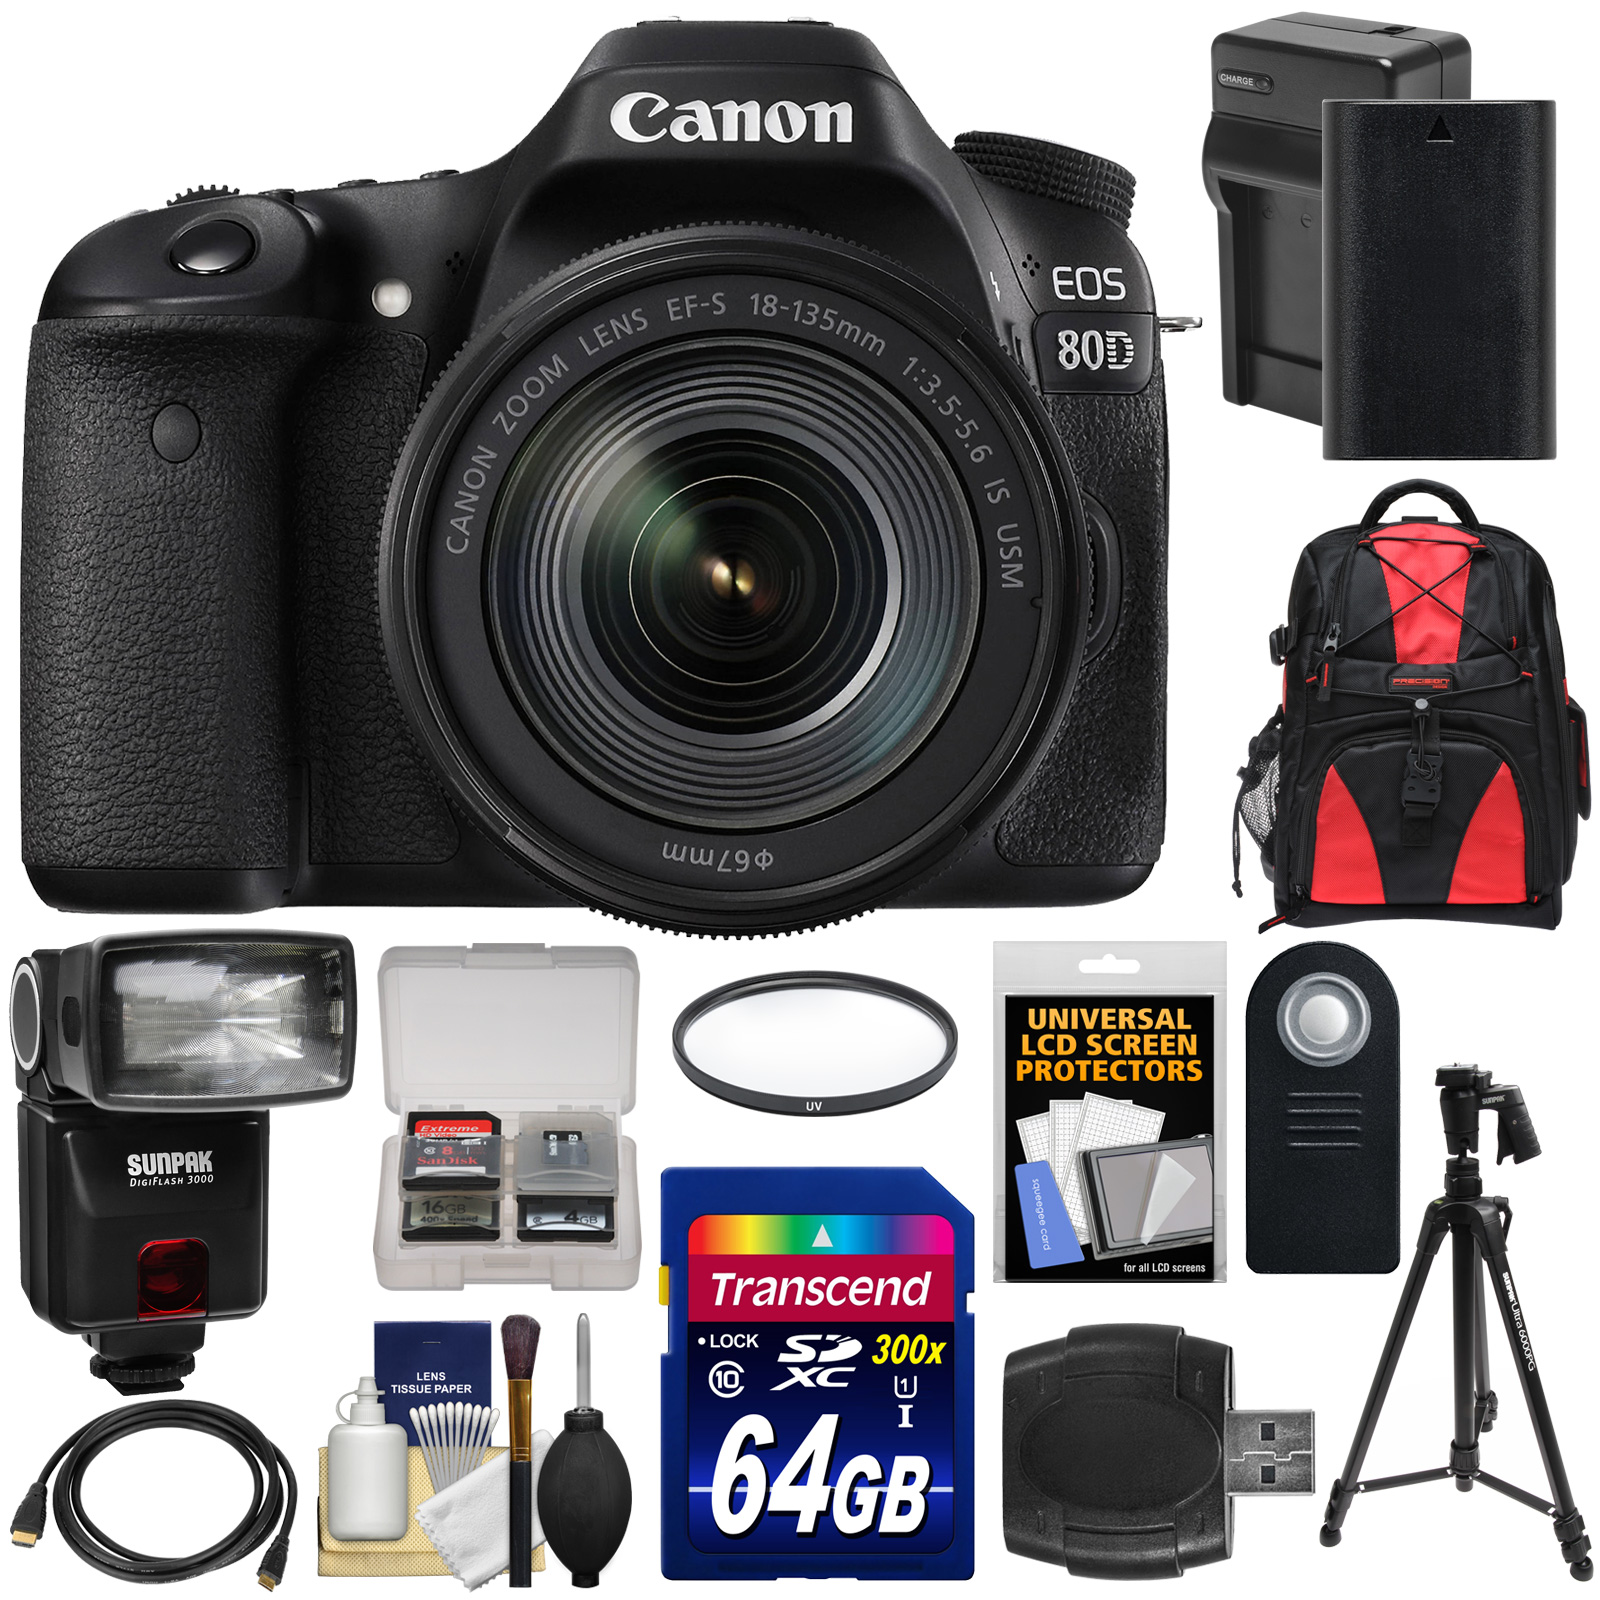 Canon Eos 80d Wi Fi Digital Slr Camera Amp Ef S 18 135mm Is Usm Lens With 64gb Card Battery